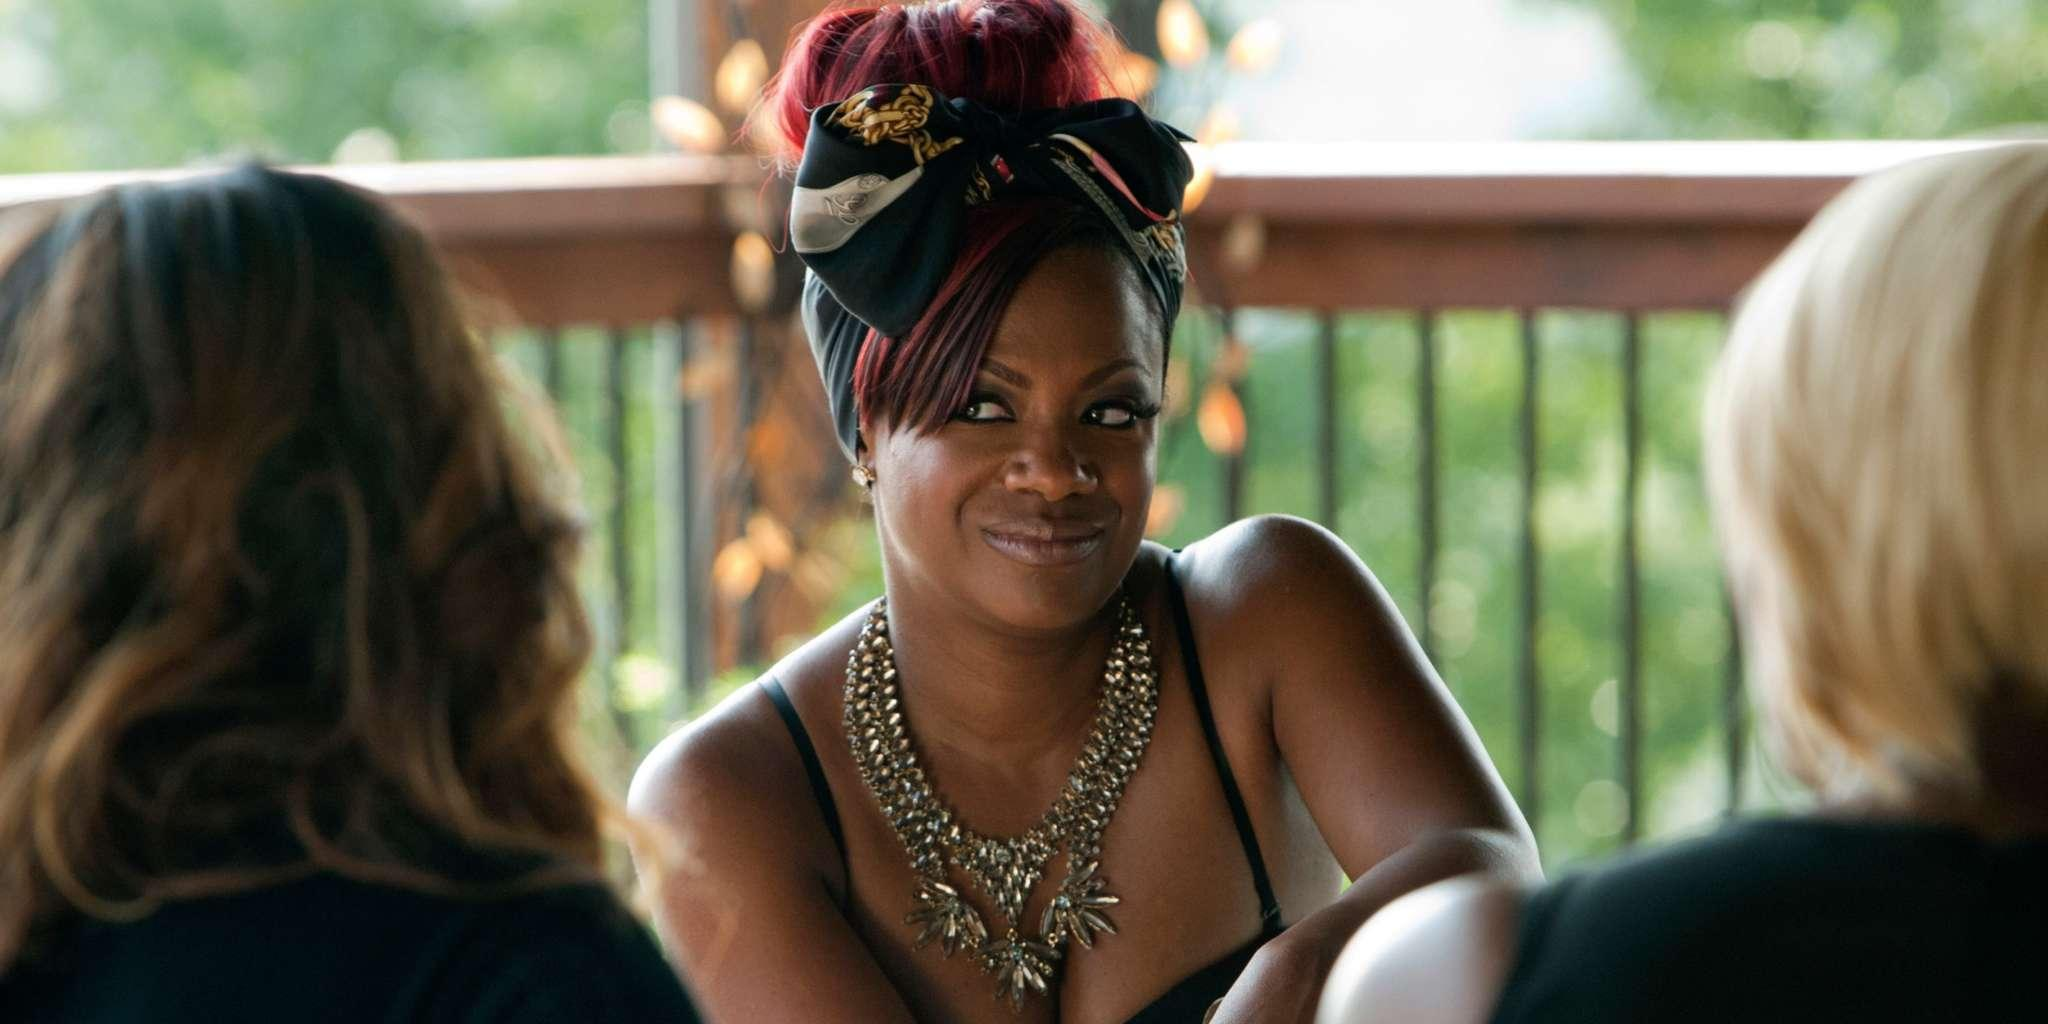 Kandi Burruss Posts A New Speak On It Episode - Check It Out Here